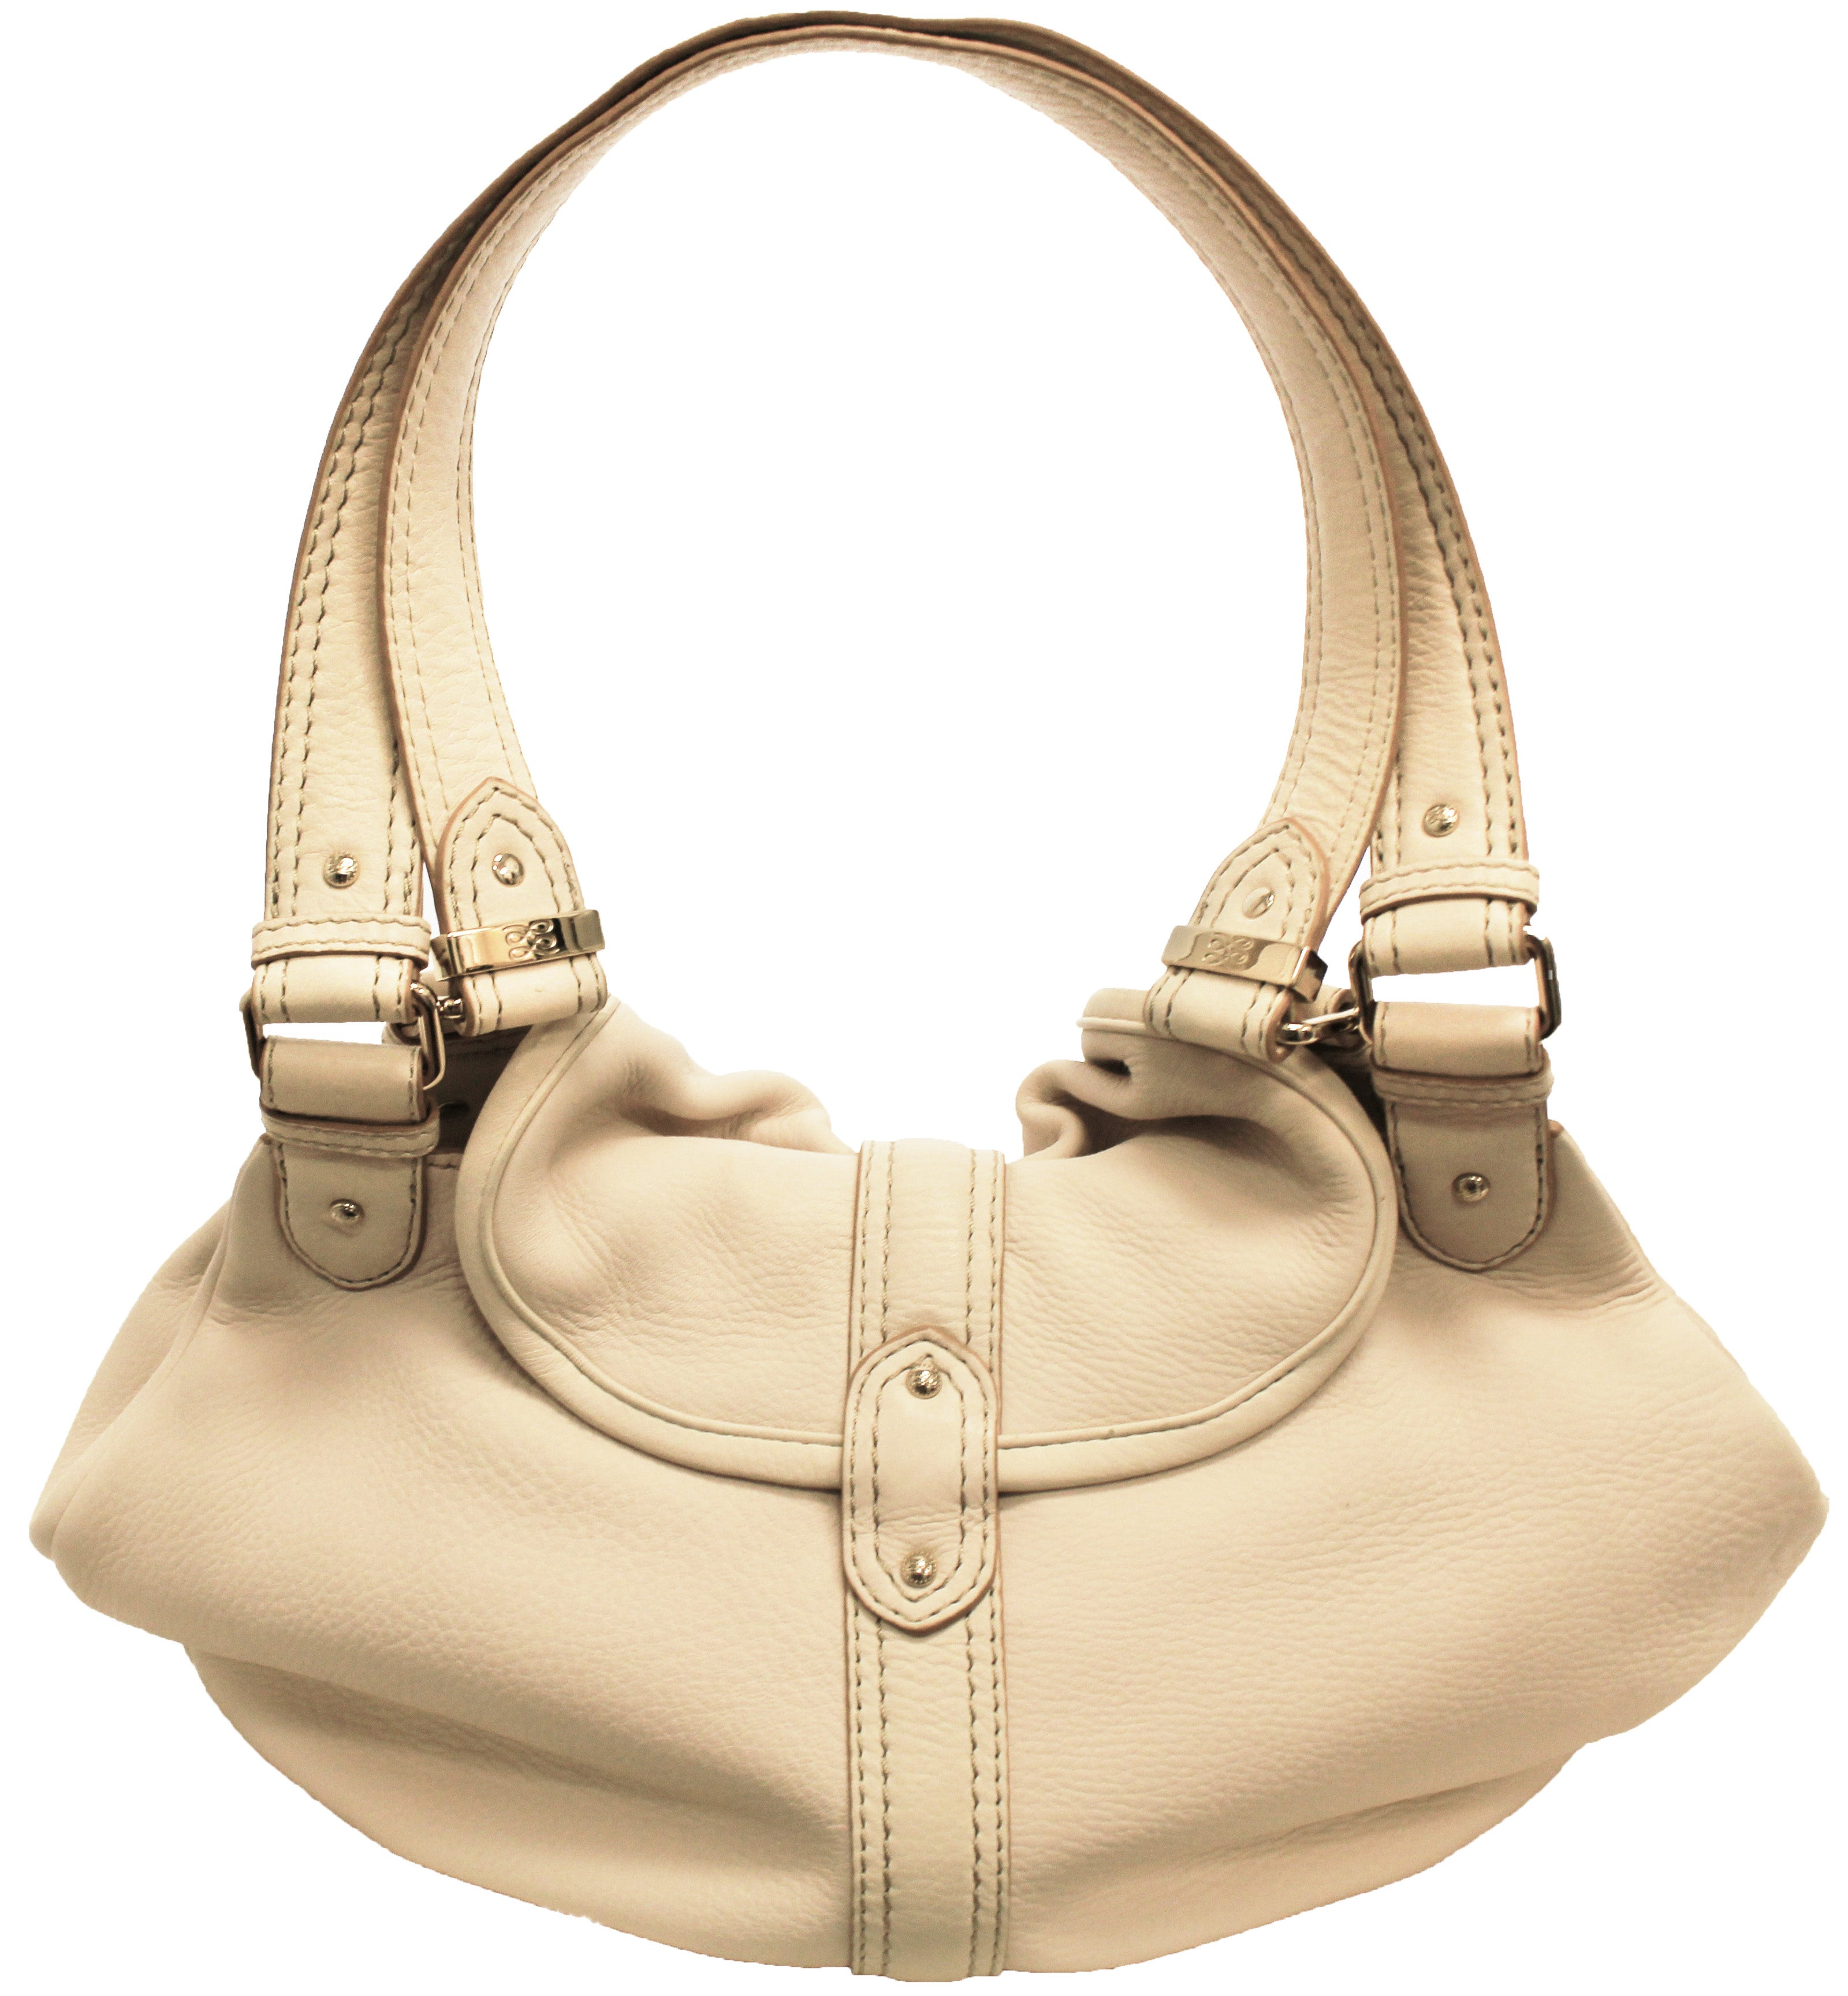 ae771ebbabaa10 Lancel Ivory Pebble Leather Two Strap Shoulder Bag For Sale at 1stdibs